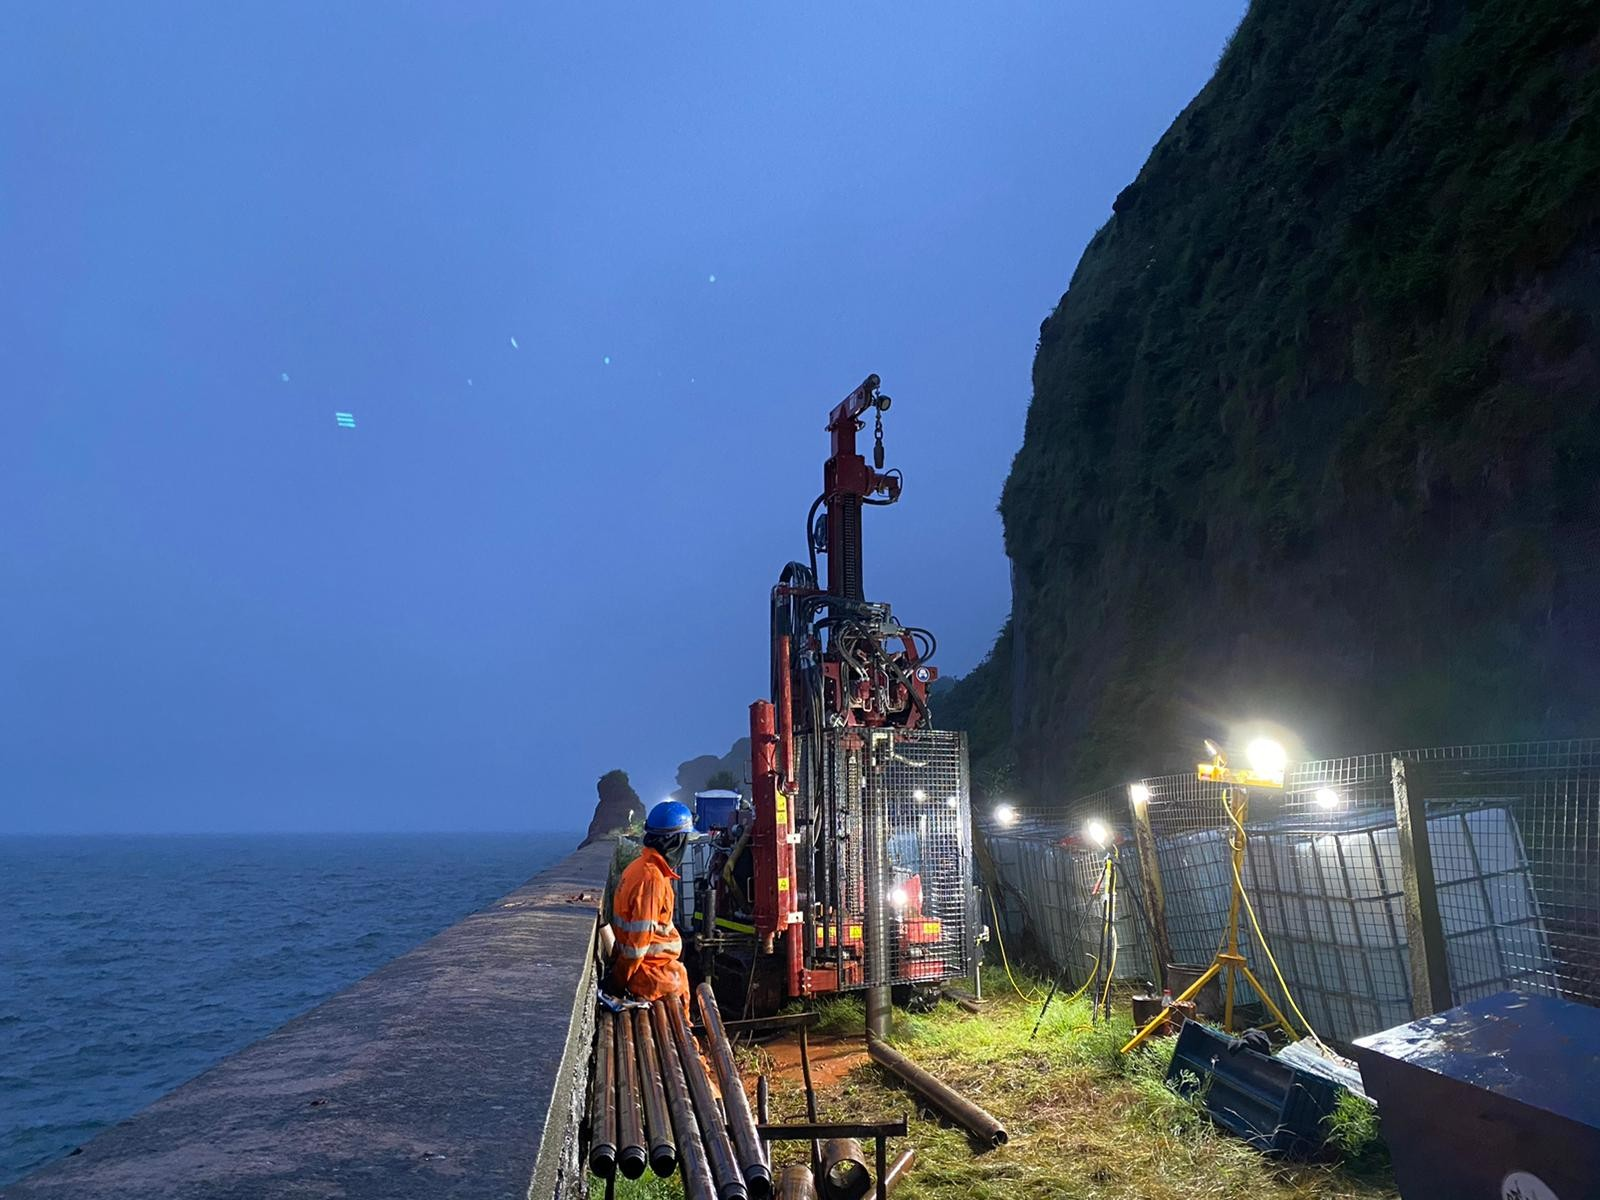 An image of the limited access job near Teignmouth, in Devon.